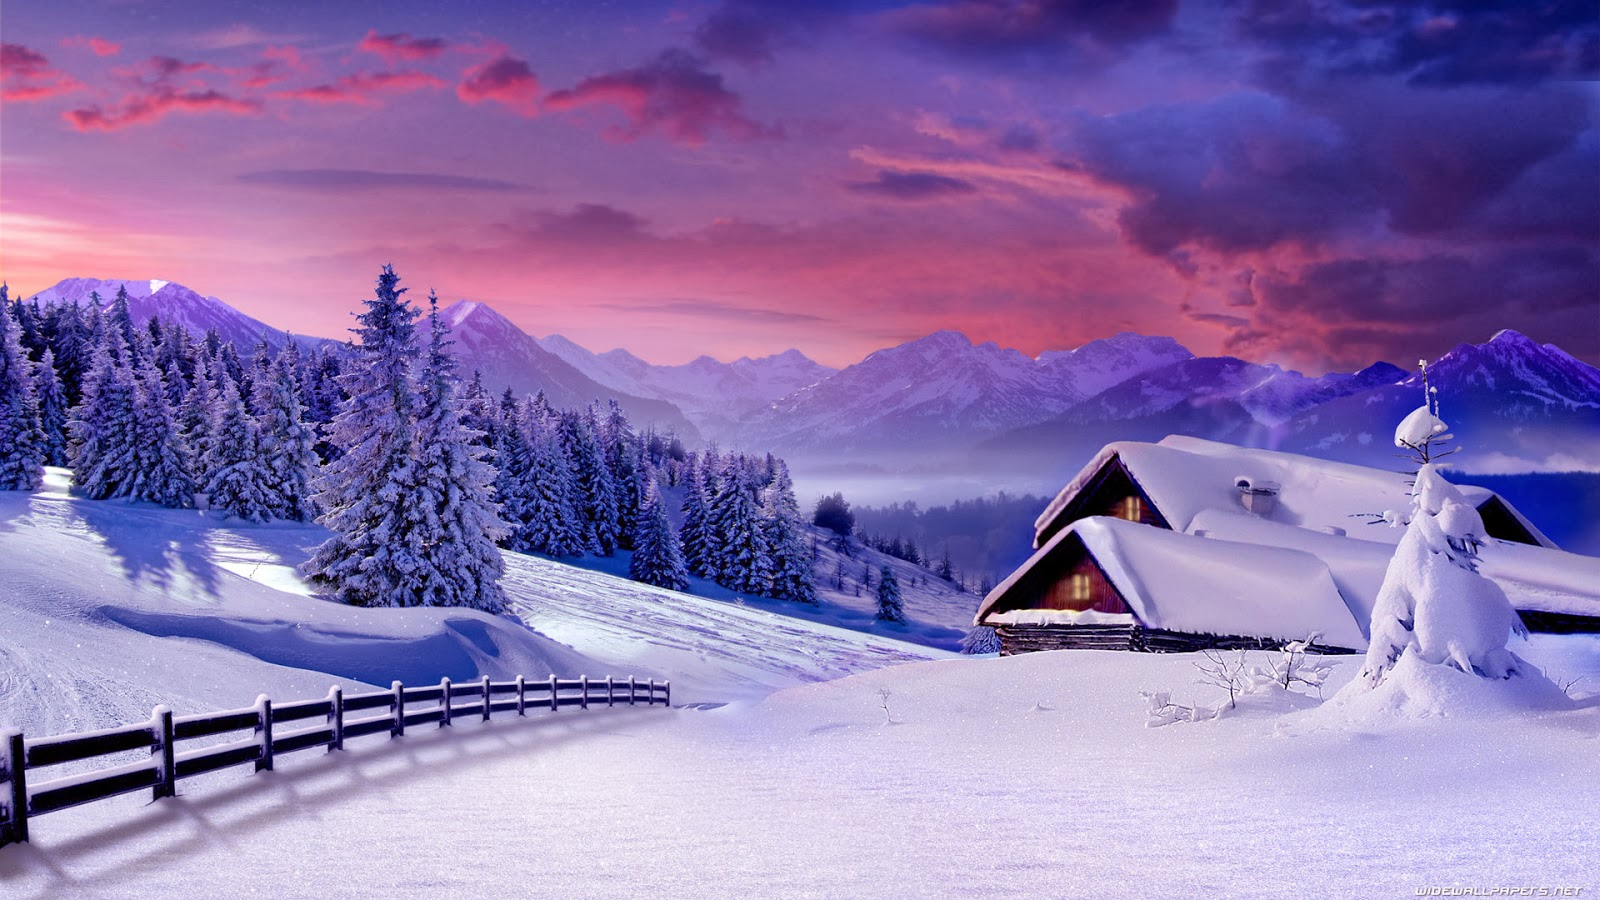 Snowy Winter Christmas Scenes Backgrounds Papneh Merrychristmas2020 Site